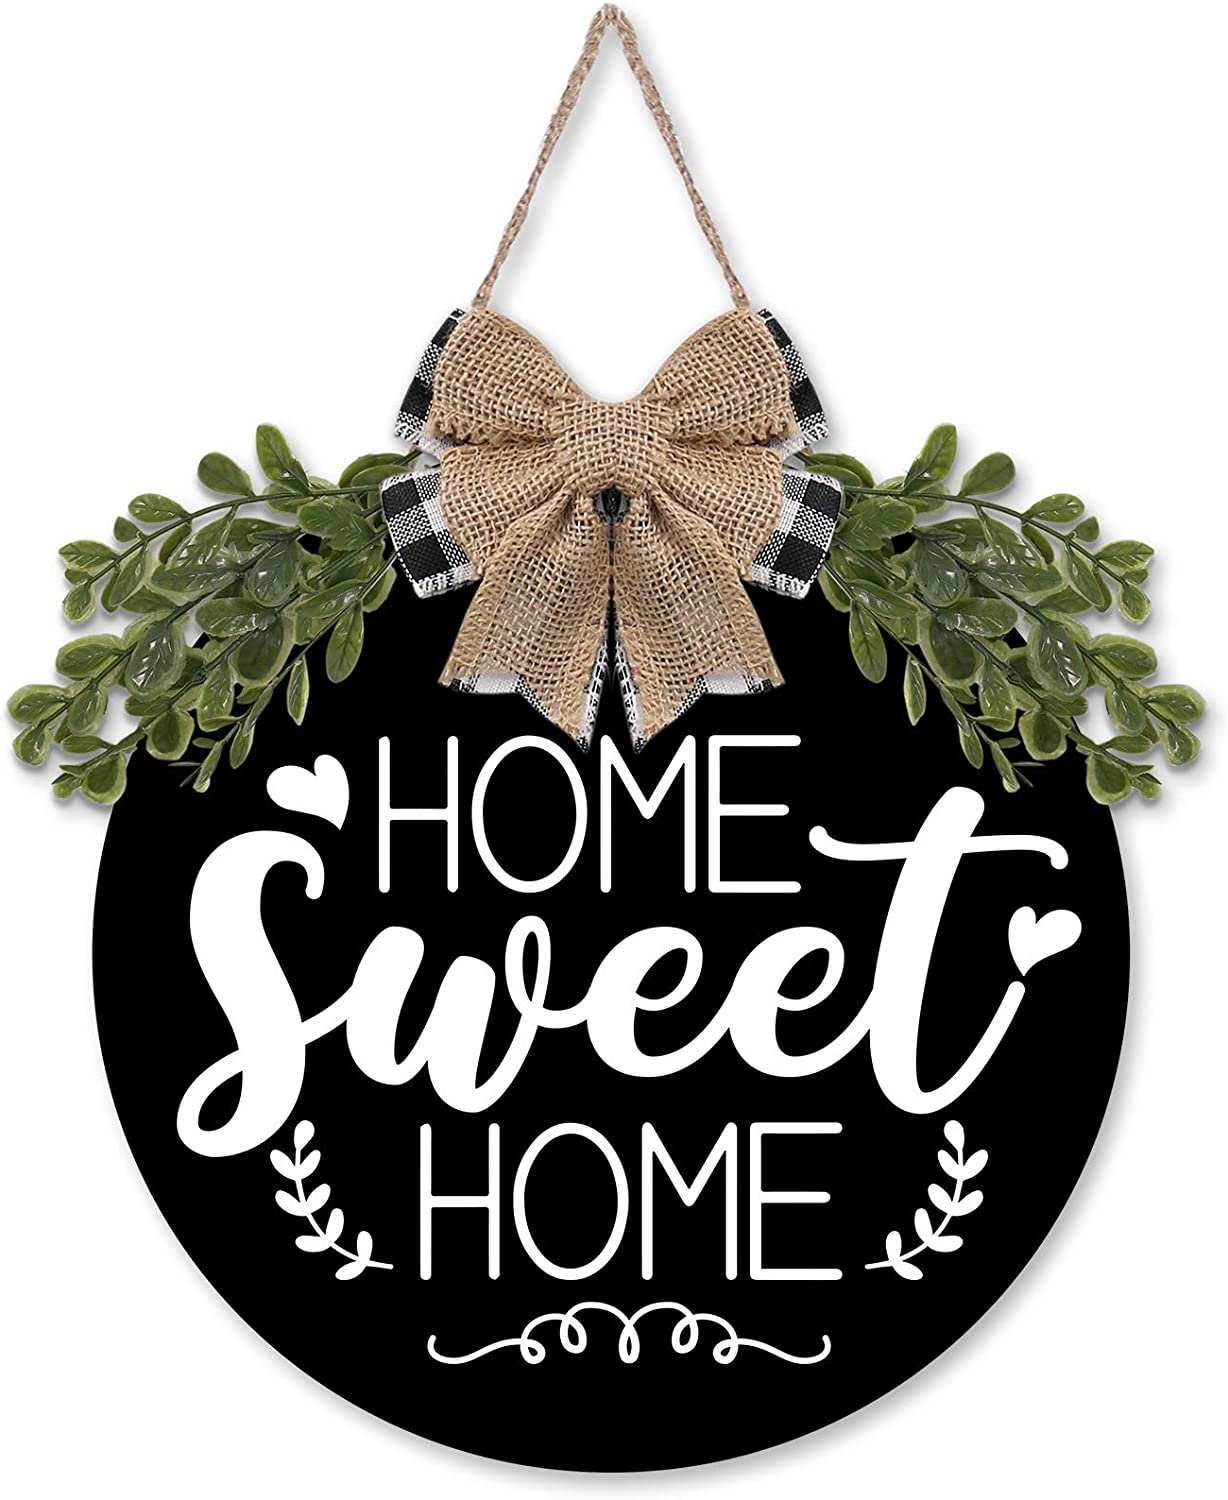 Home Sweet Home Wooden Circle Door Hanger Greenery Buffalo Plaid Burlap Bow Front Wall Sign Rustic Farmhouse Housewarming Decoration Ideas Supplies 12 Inches-Black